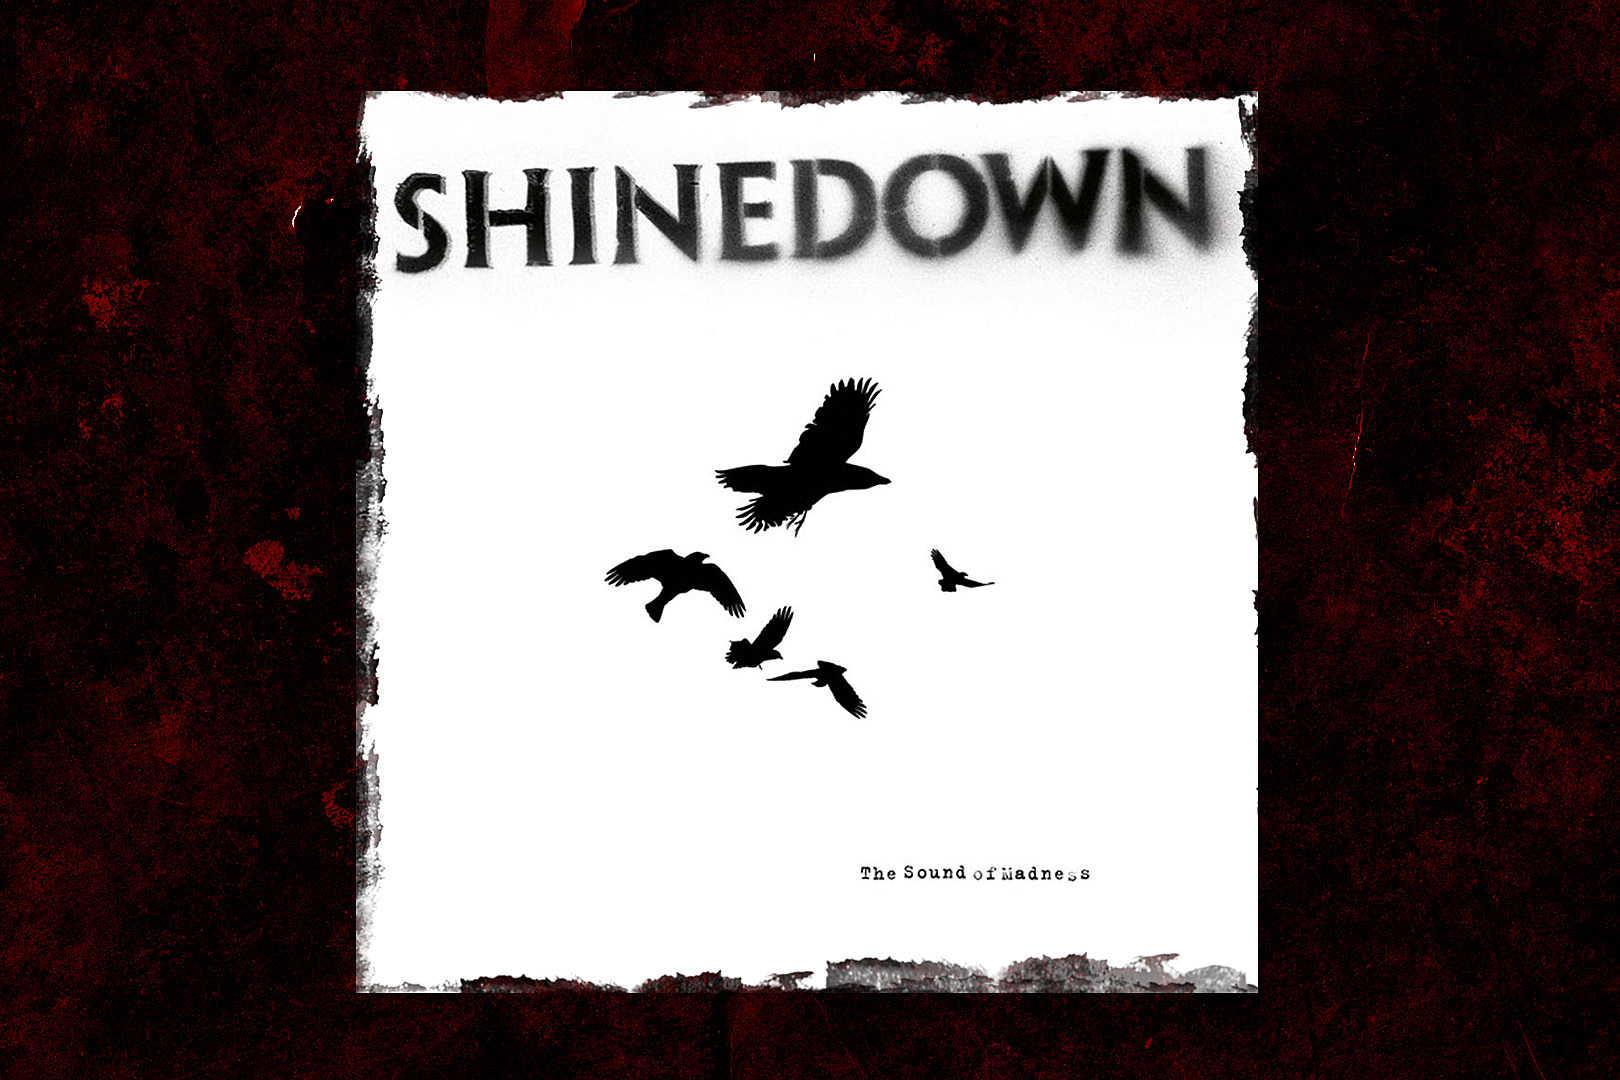 12 Years Ago: Shinedown Release 'The Sound of Madness'